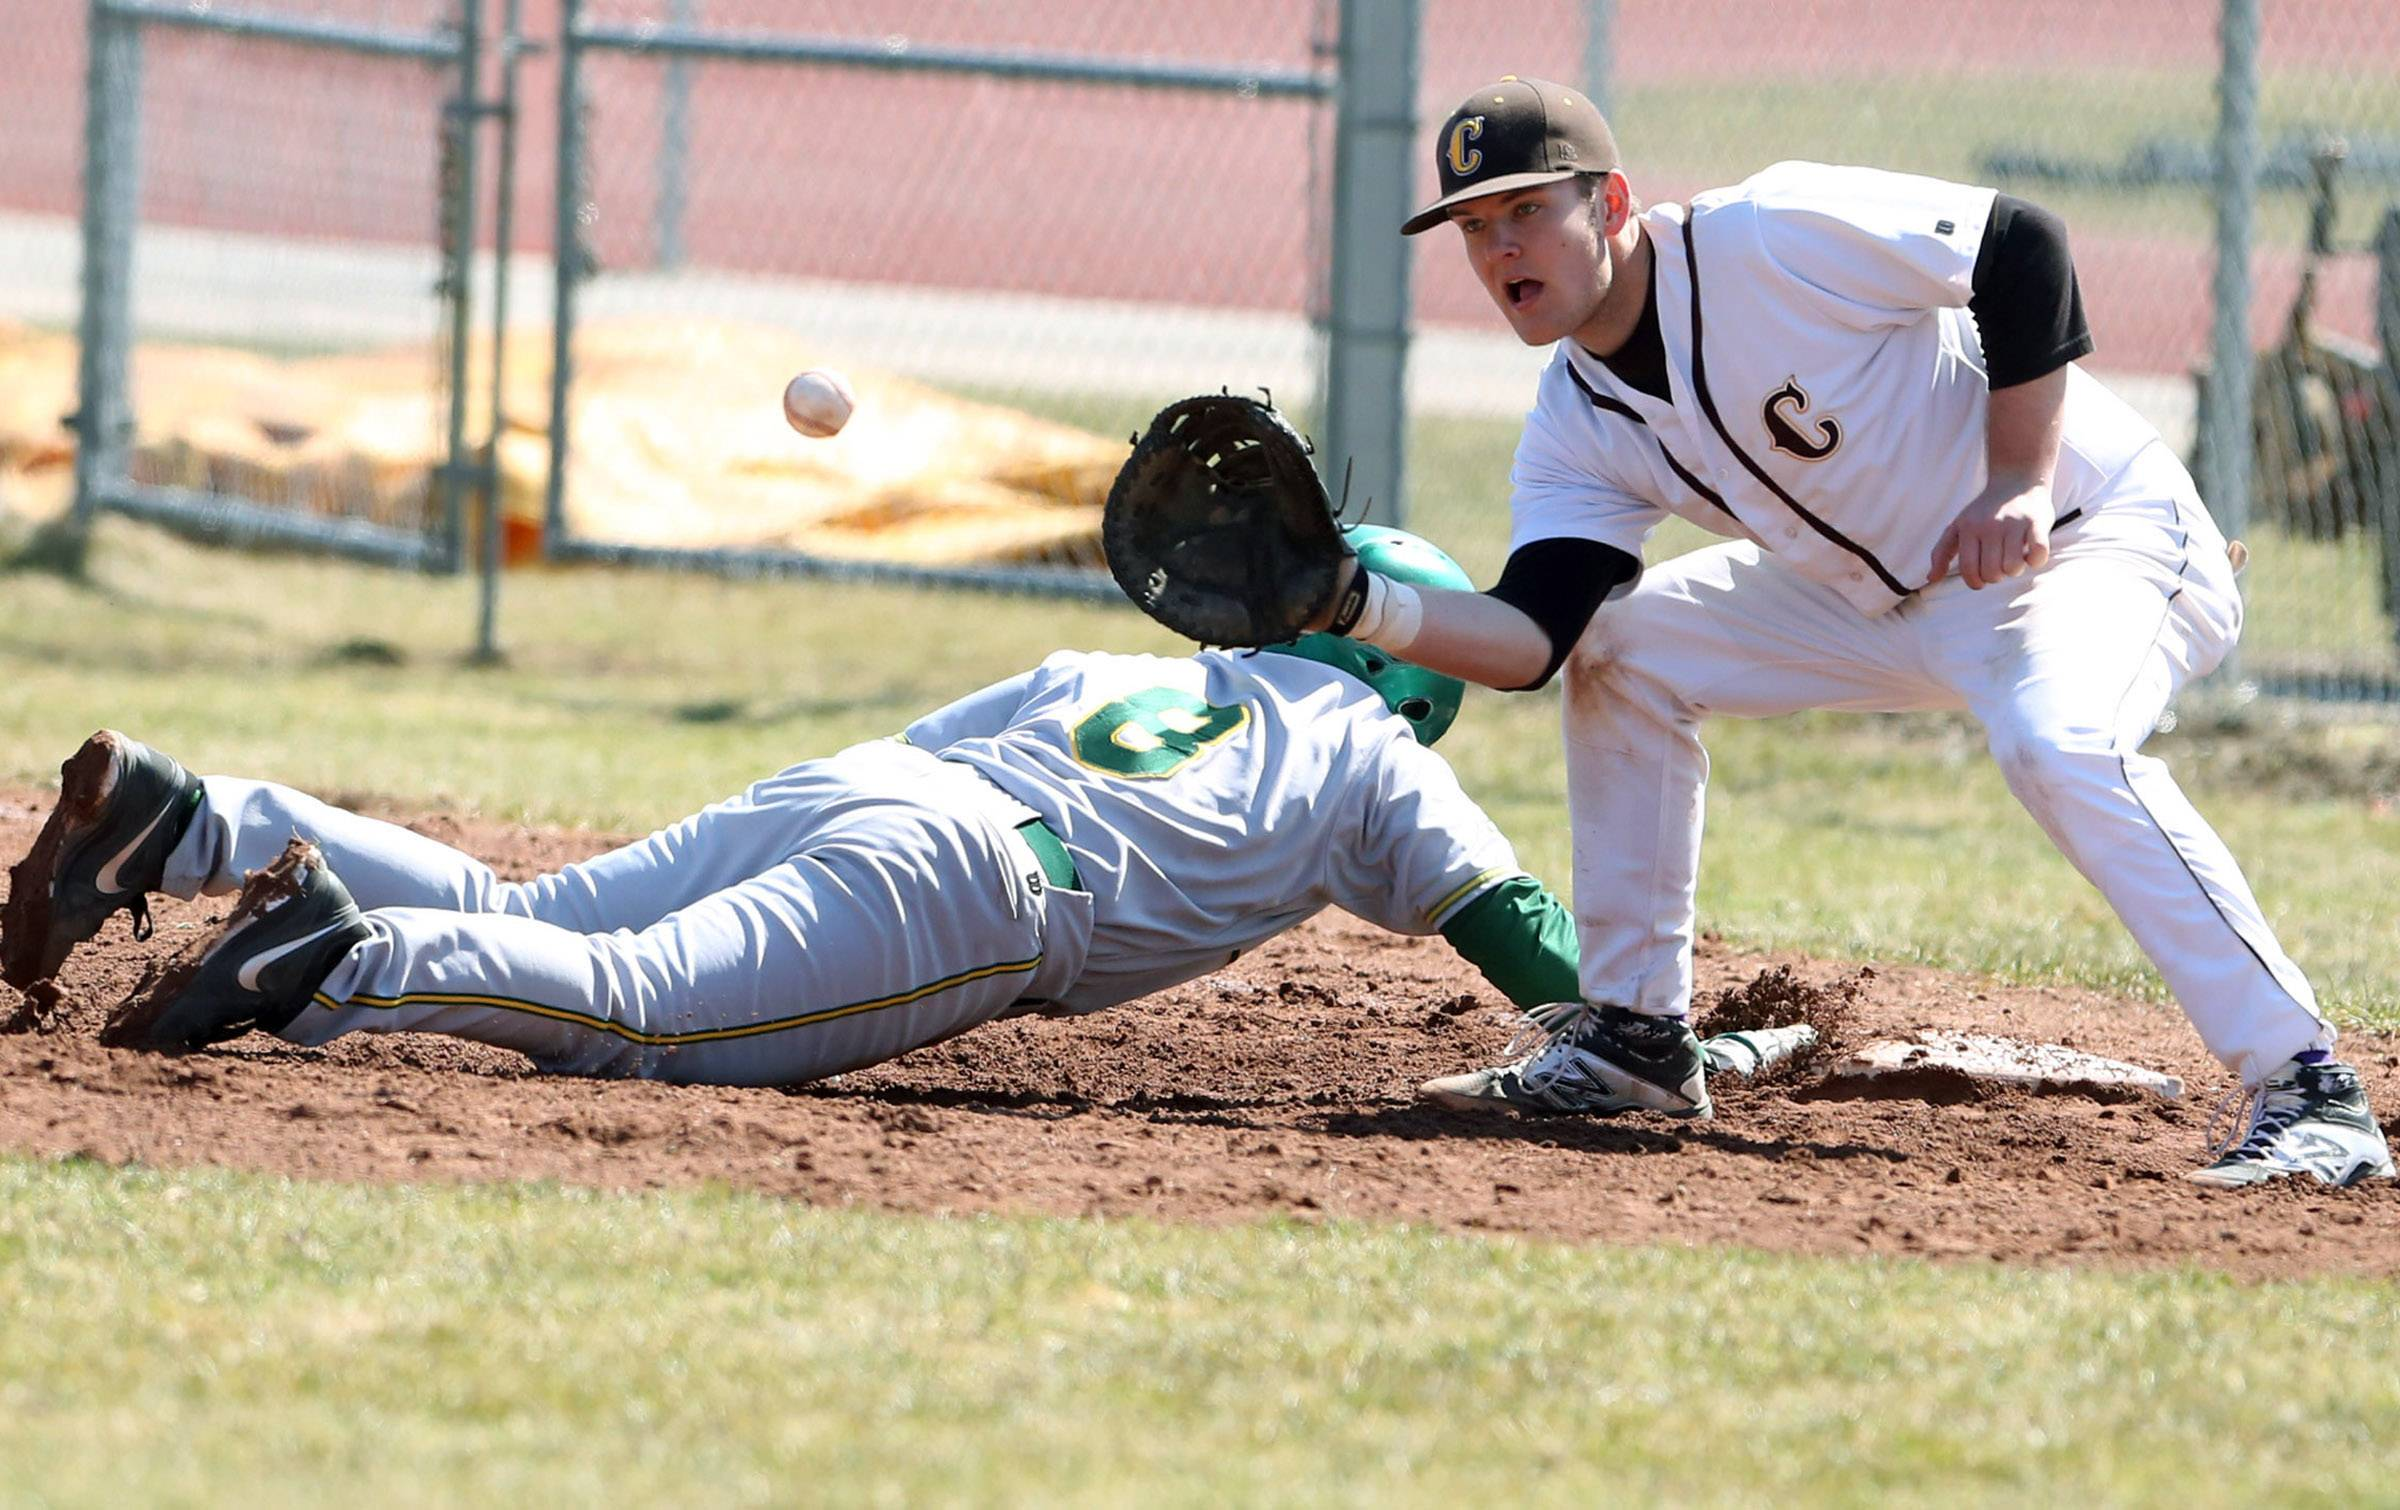 Stevenson's Michael Banakis dives safely back to first base as Carmel first baseman Andrew Wienke waits for the ball on Saturday in Mundelein.